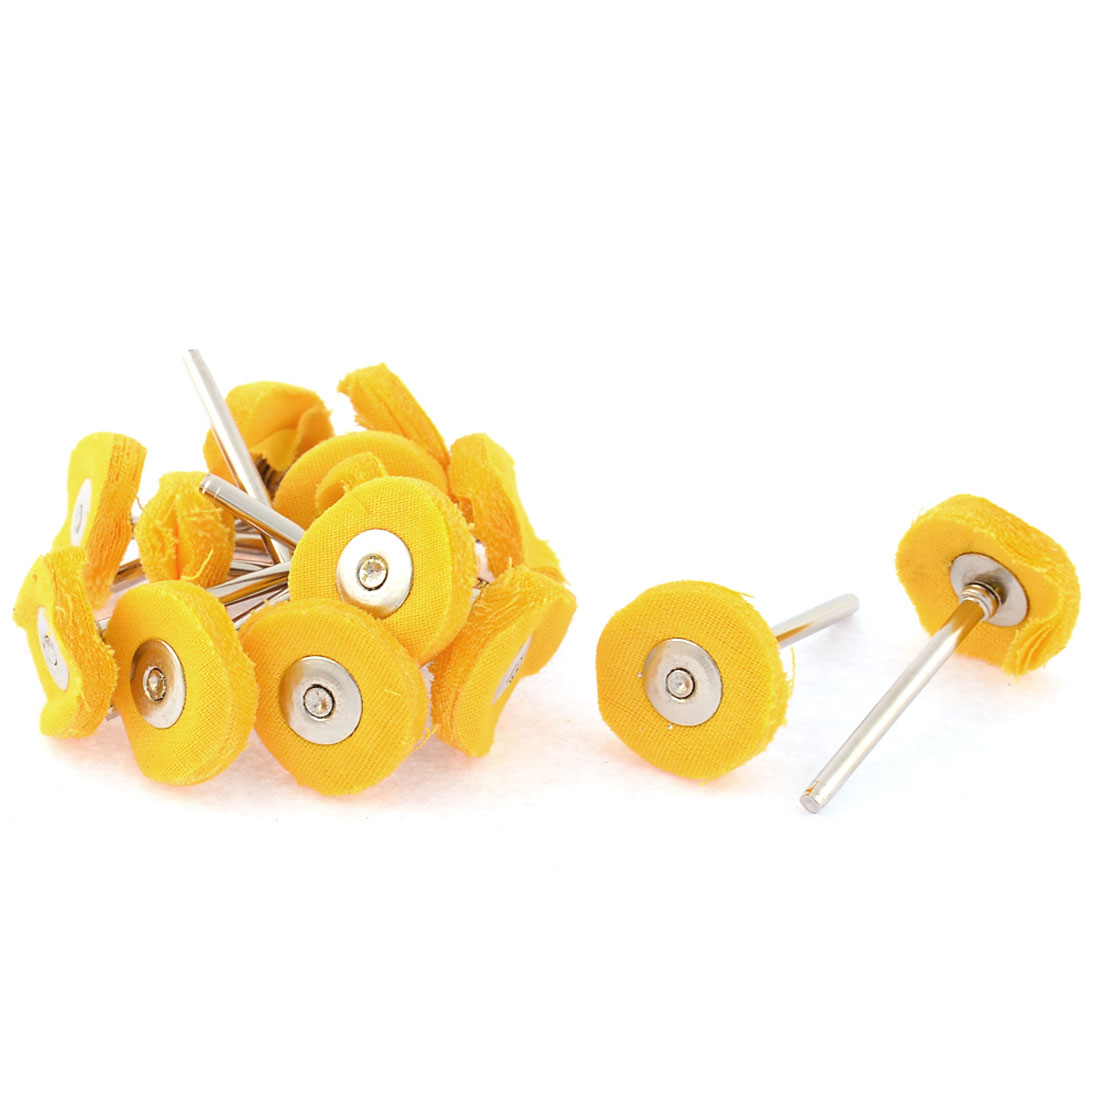 15 Pcs 3mm Shank 22mm Dia Electric Drill Polish Buffing Wheel Yellow